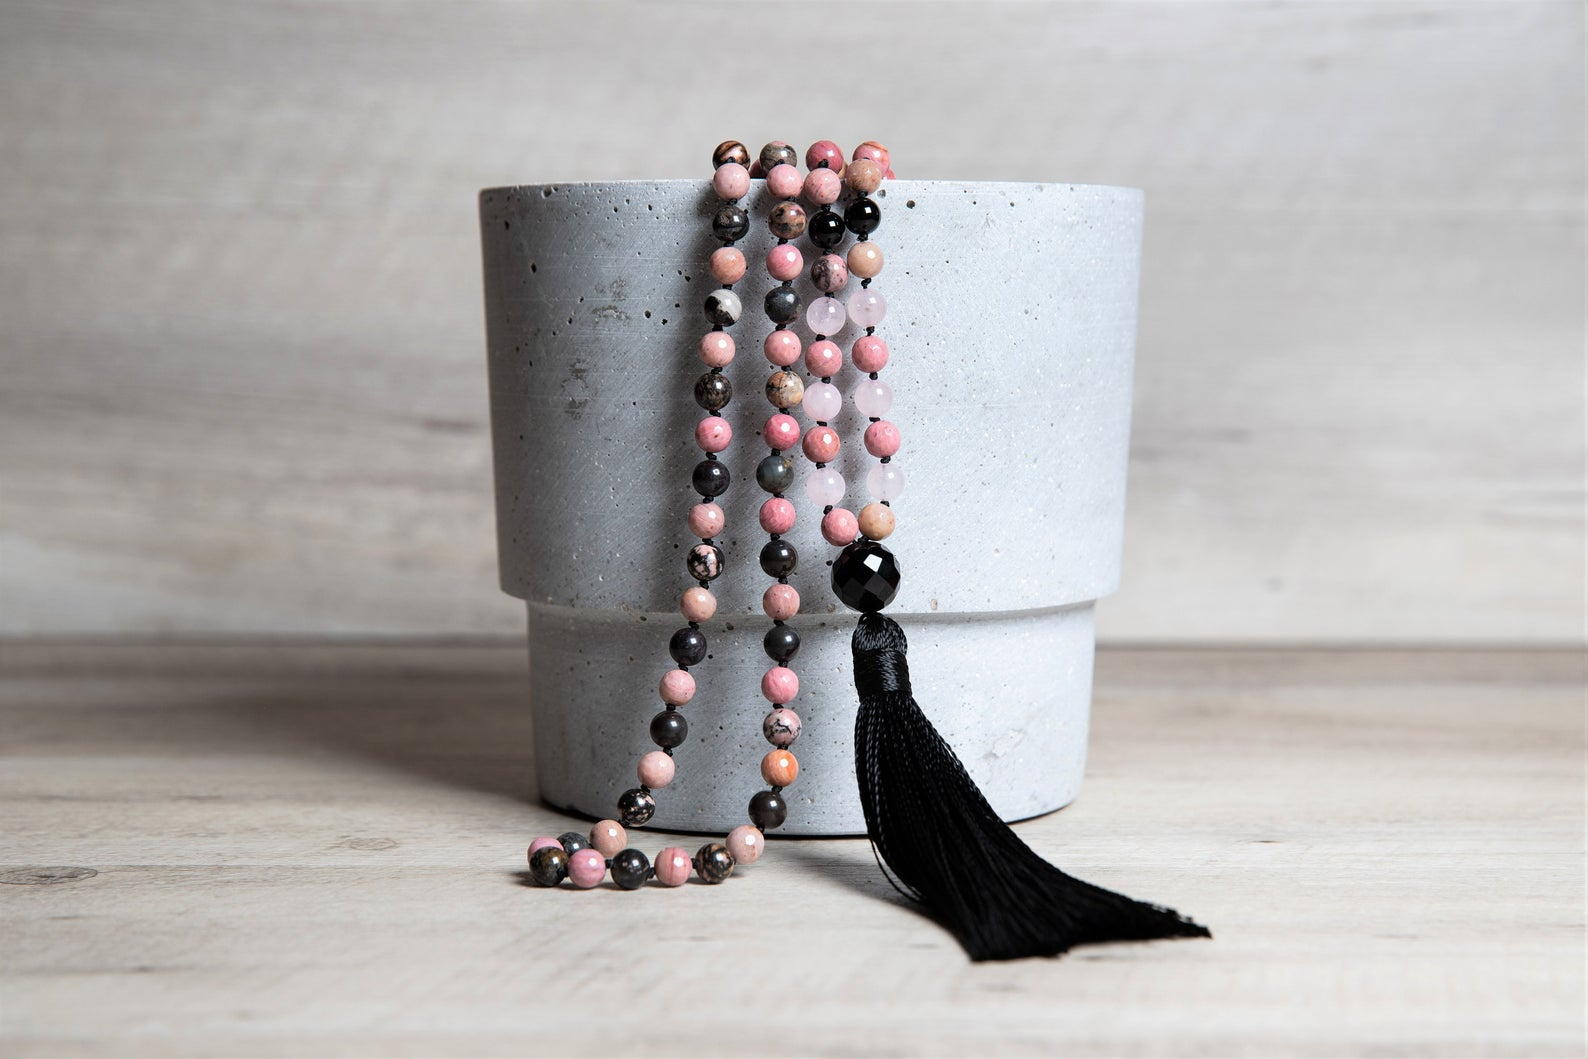 Natural Rhodonite, Pink Rhodochrosite n' Rose Quartz Mala Necklace with Black Agate Guru and Handmade Tassel, Healing Crystals for Love